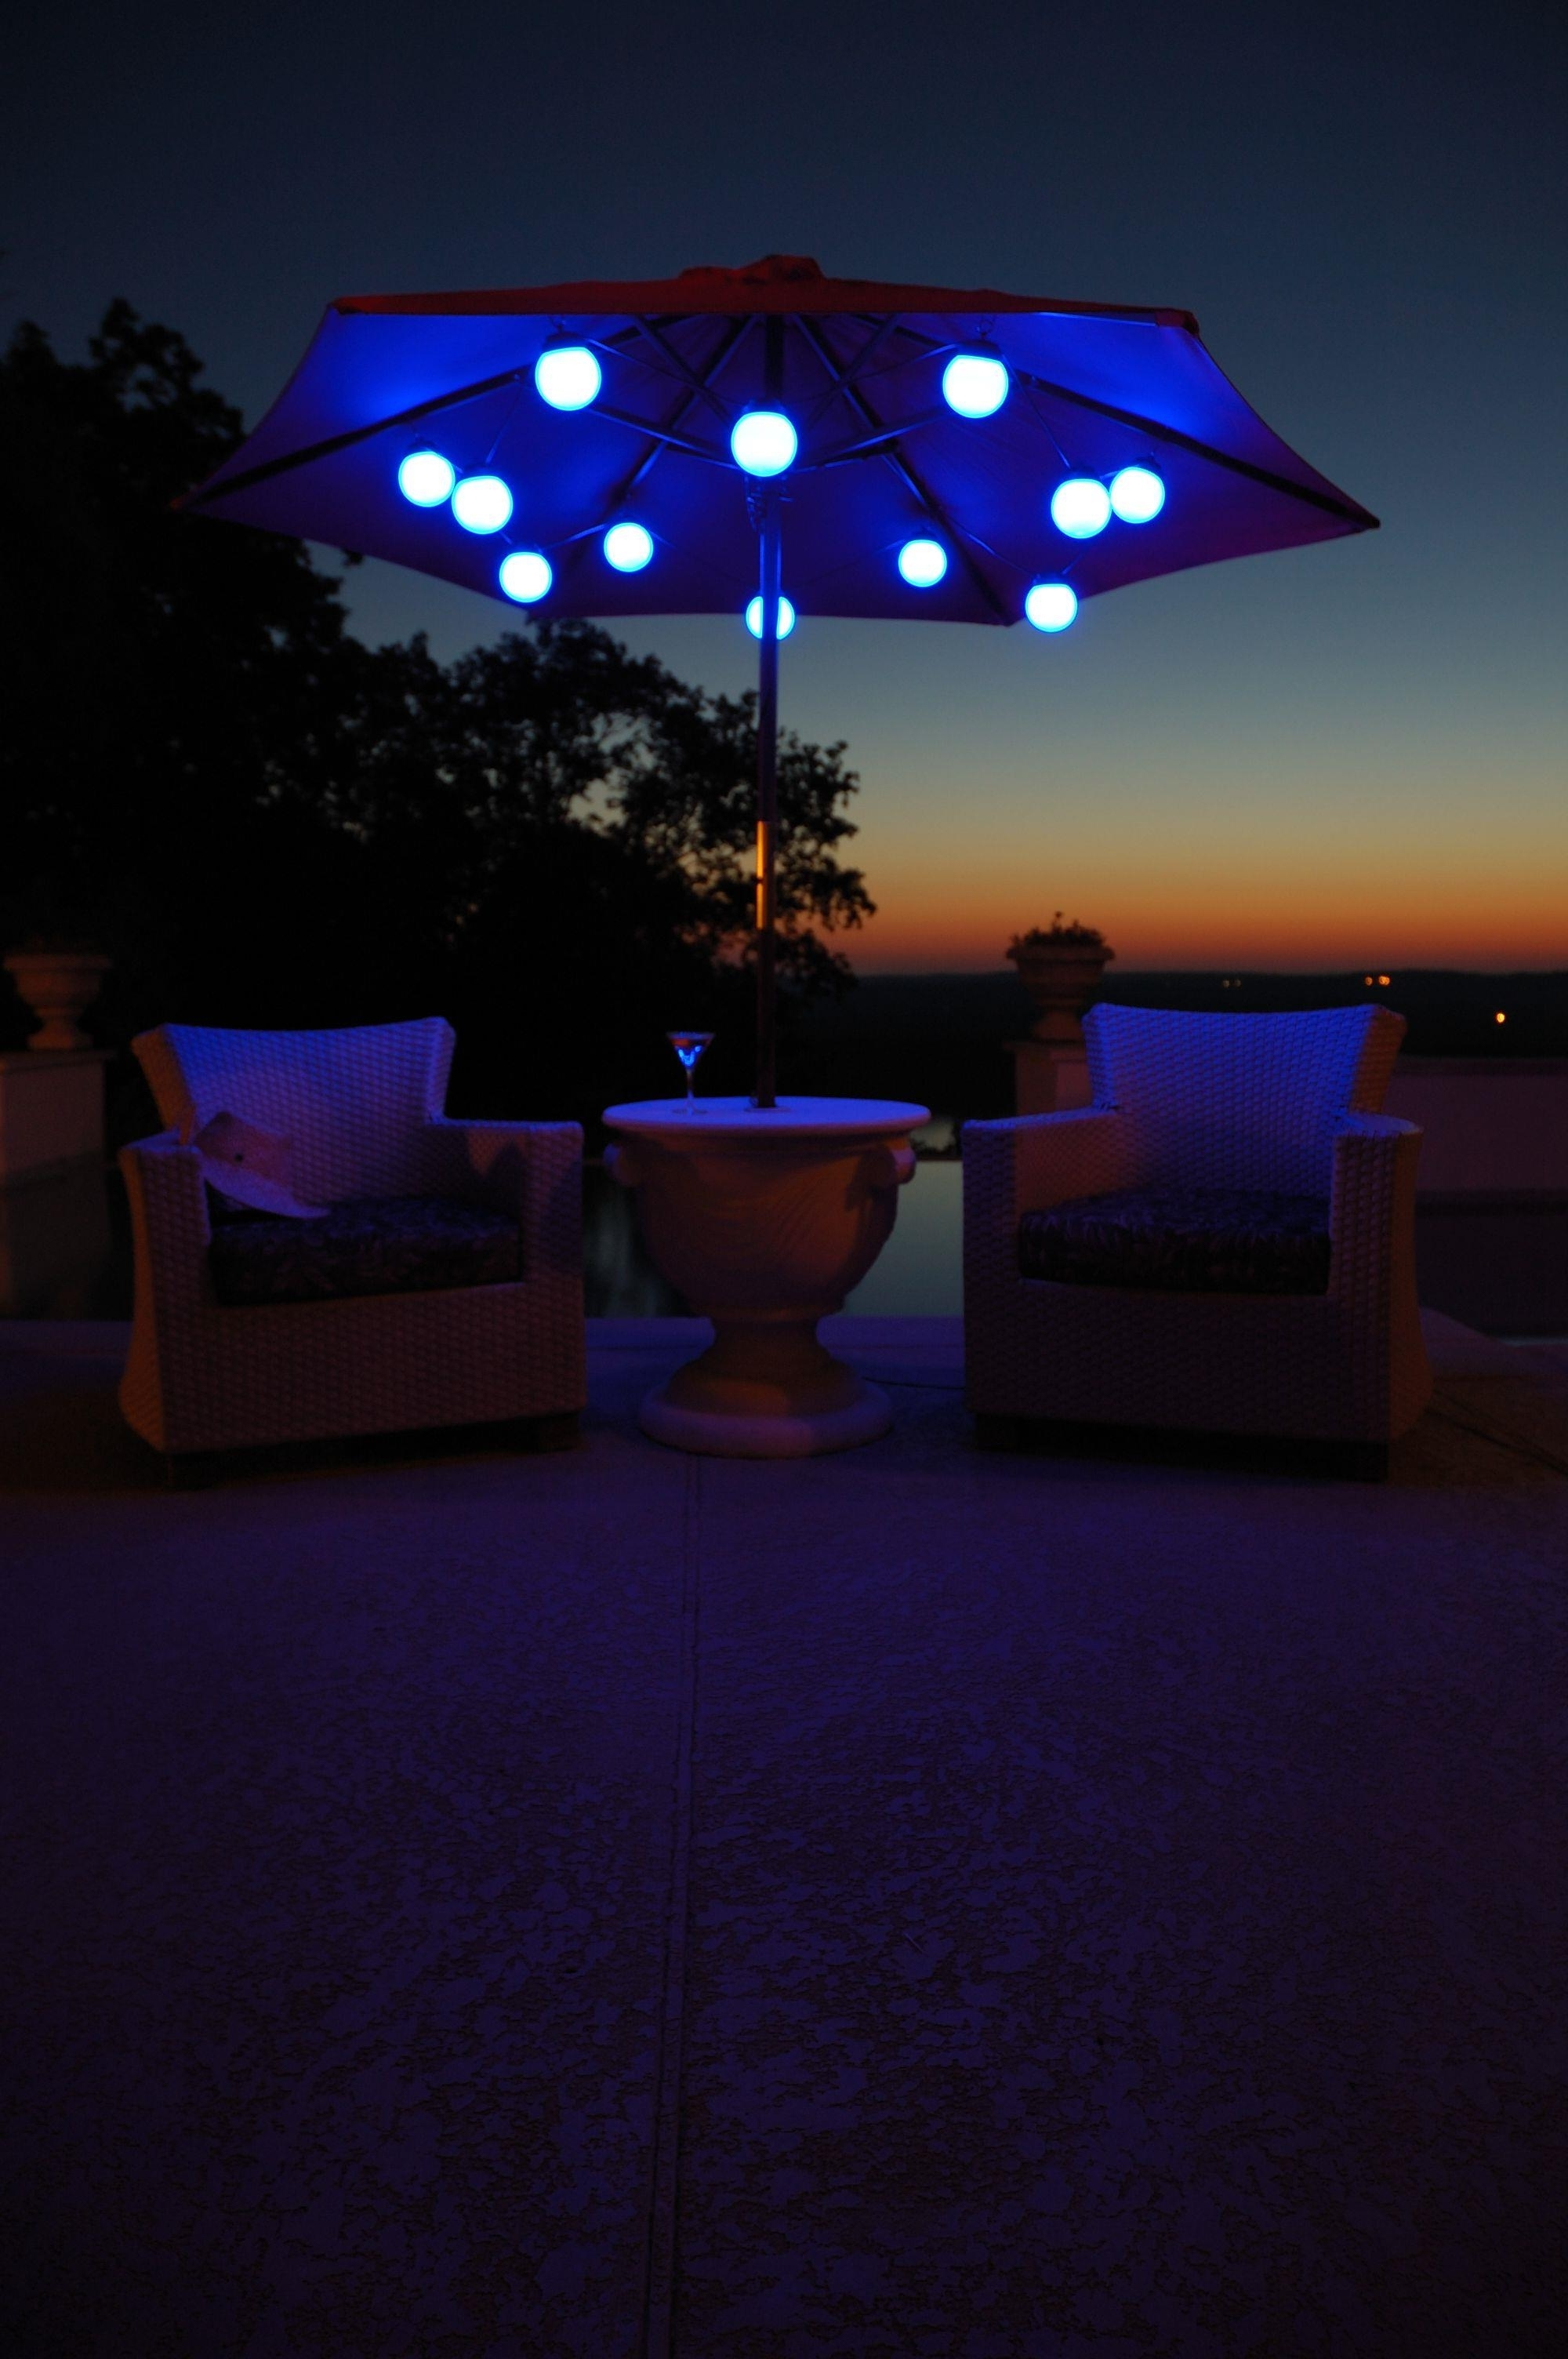 44 Patio Umbrella Light, 27 Ideas For Decorating Patio With Lighting Within Current Patio Umbrellas With Solar Led Lights (Gallery 13 of 20)